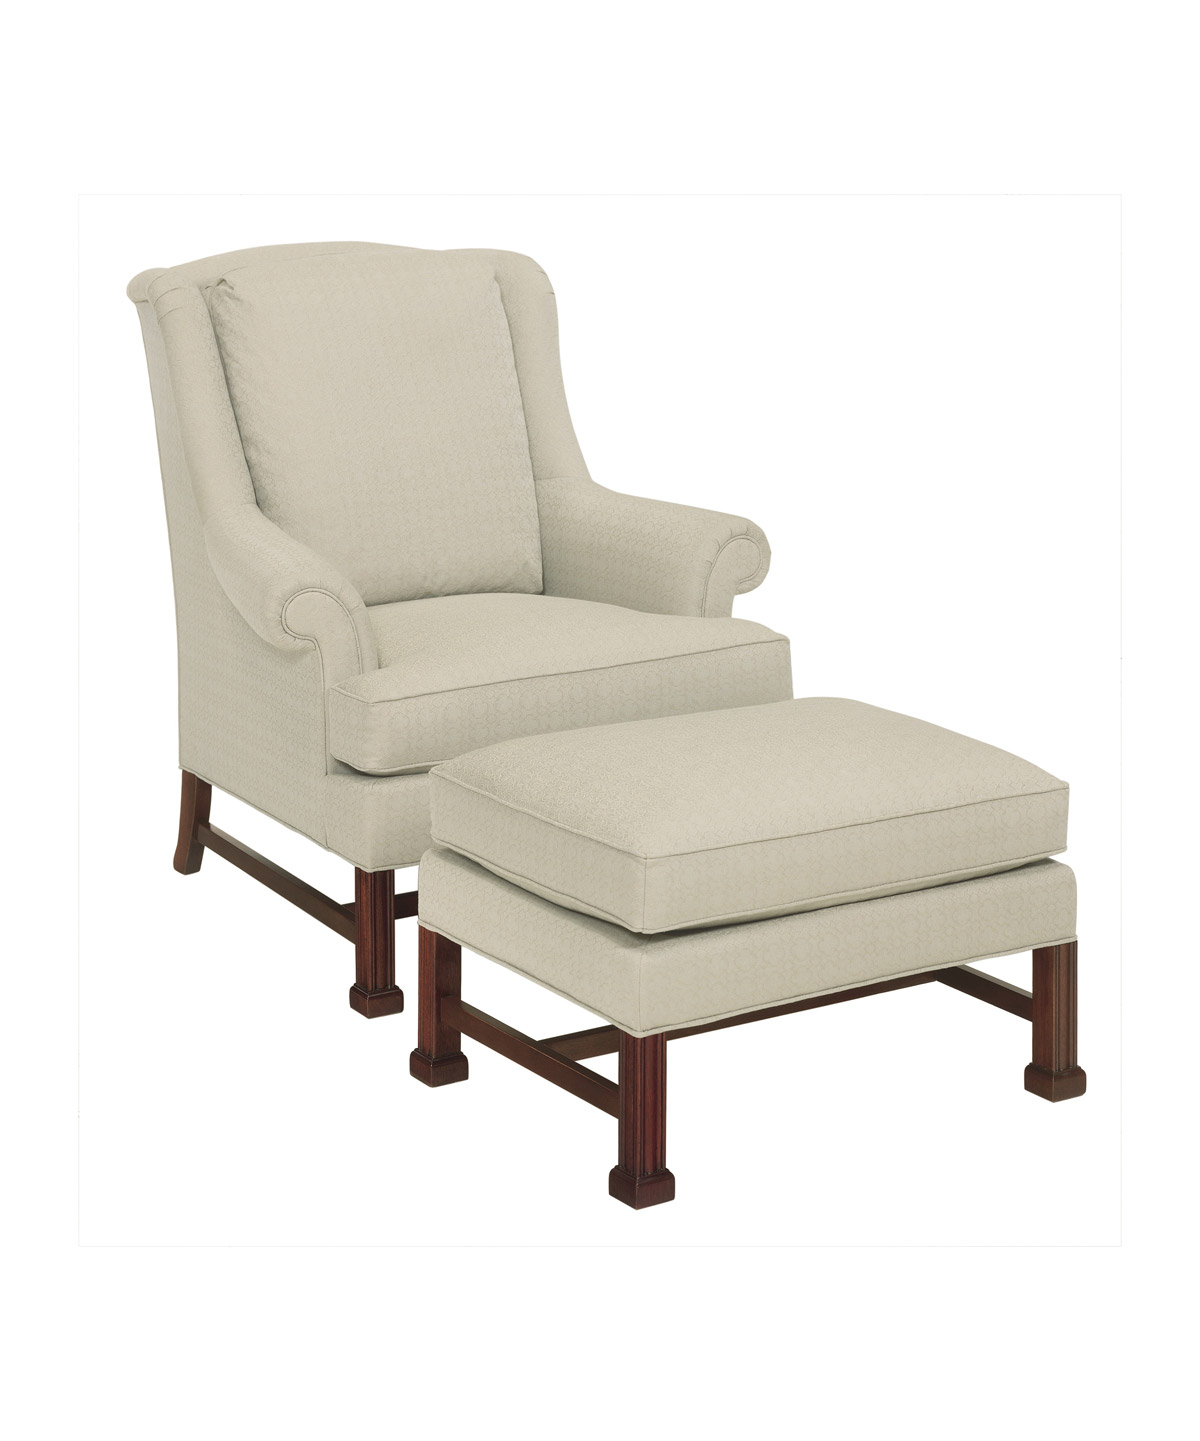 Marlborough Lounge Chair